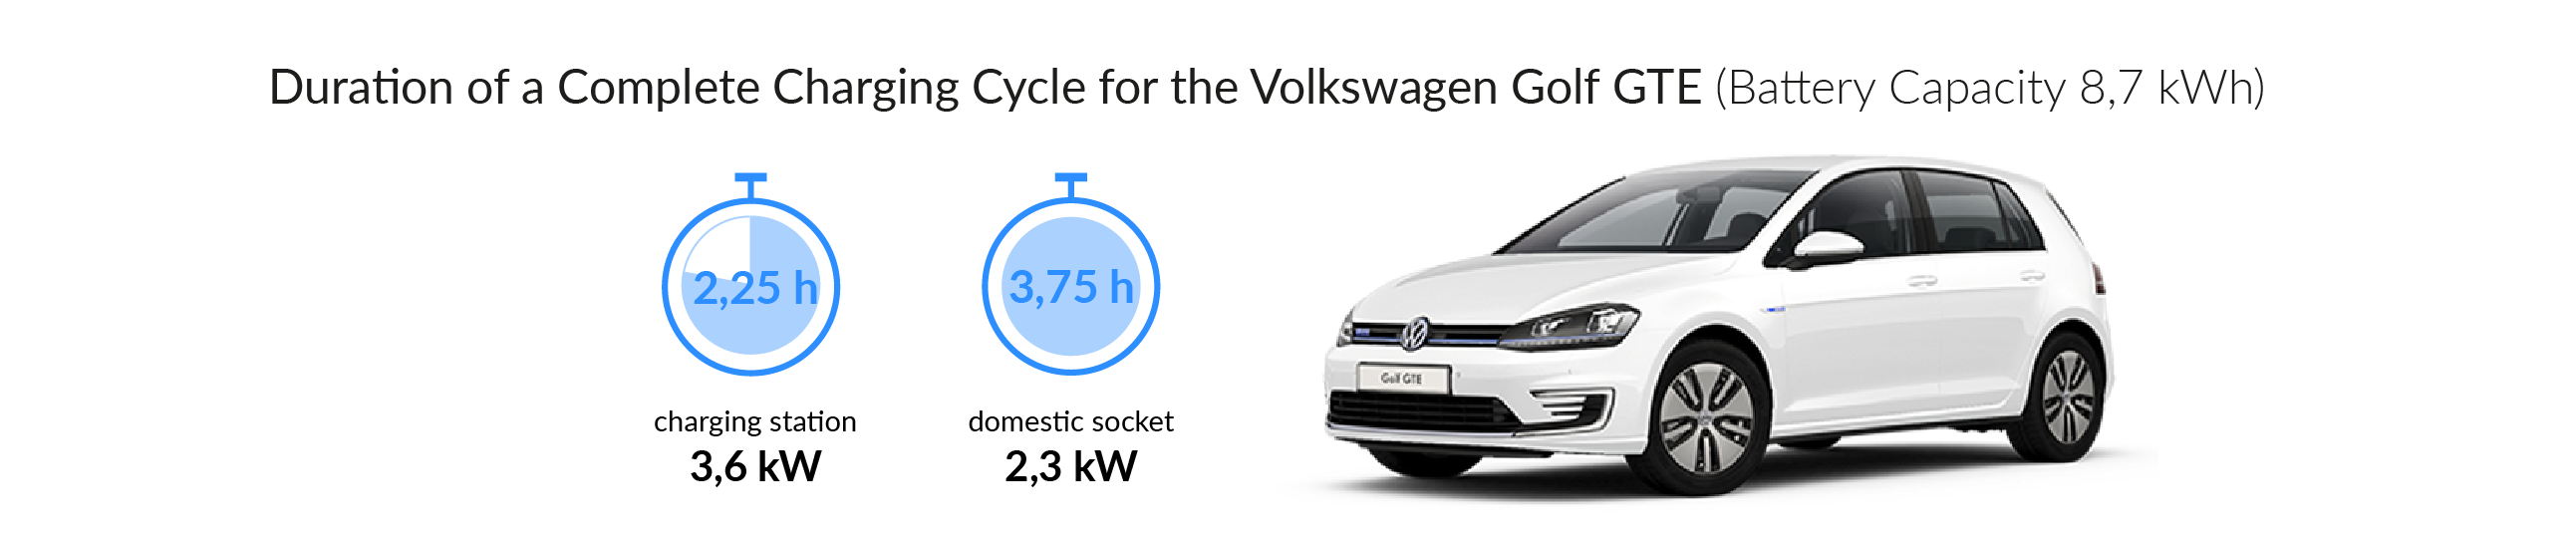 Volkswagen Golf GTE | Charging station, charging cable ... on